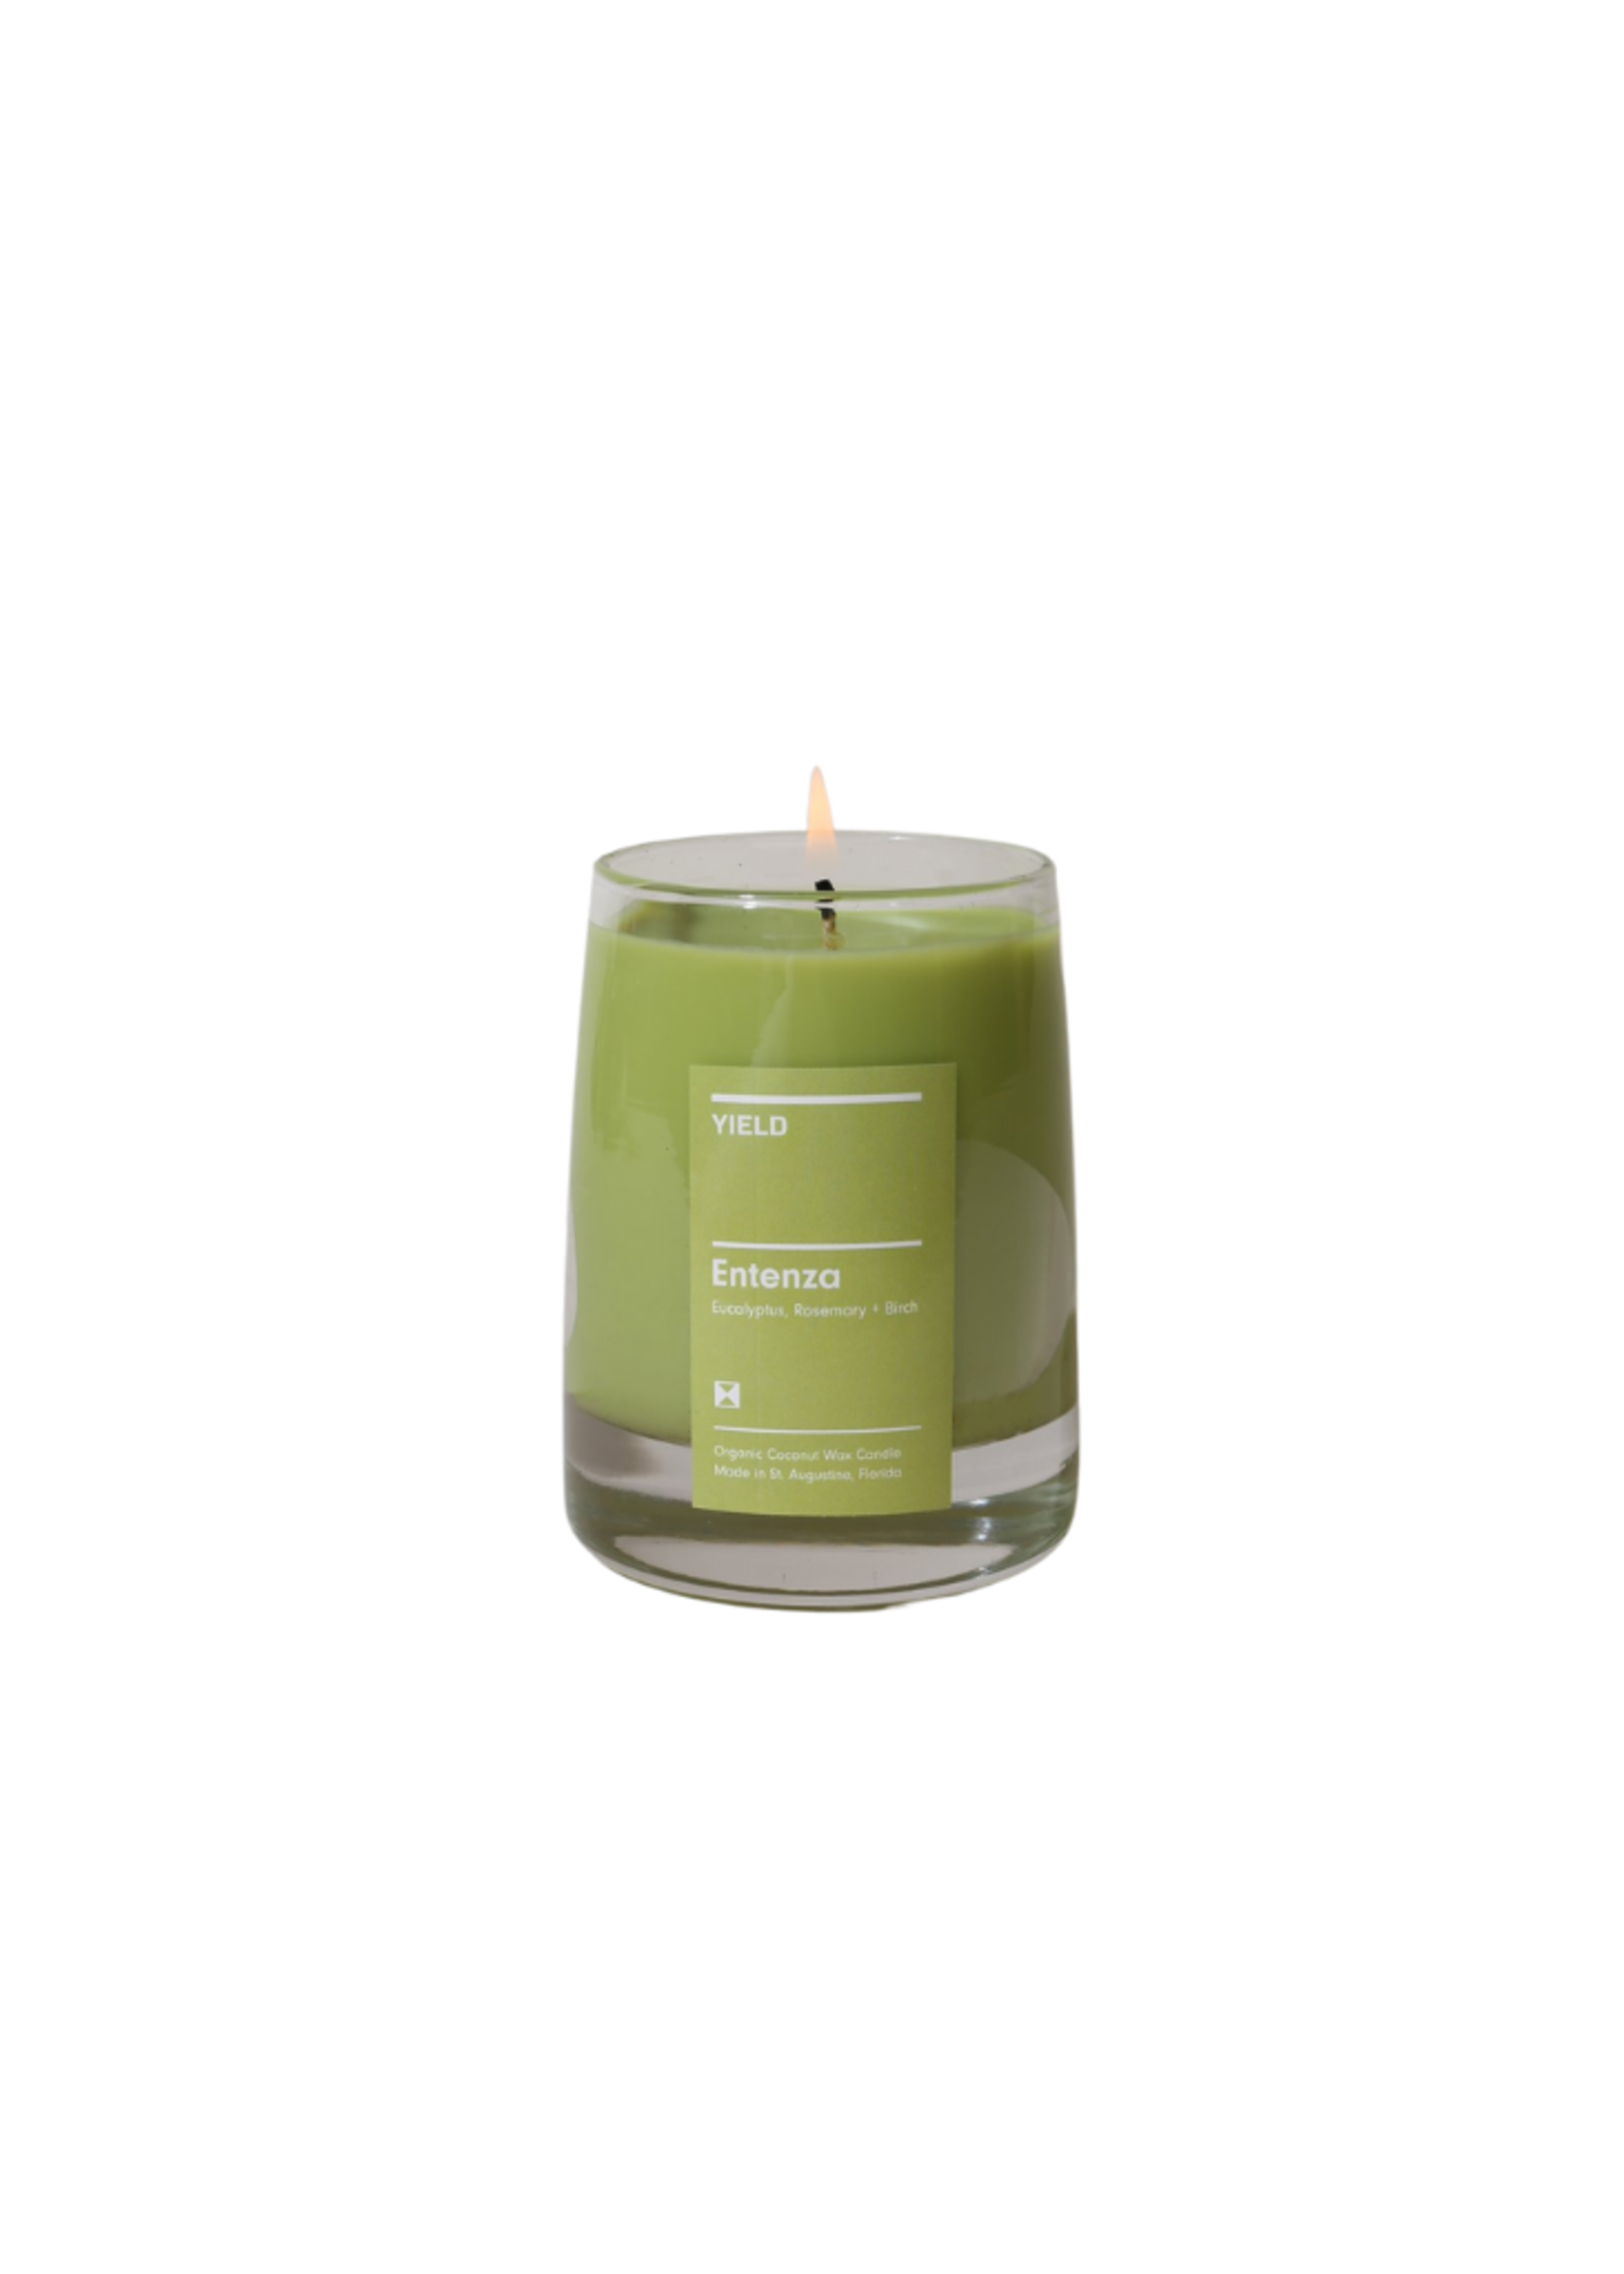 Yield Design Co Entenza Candle